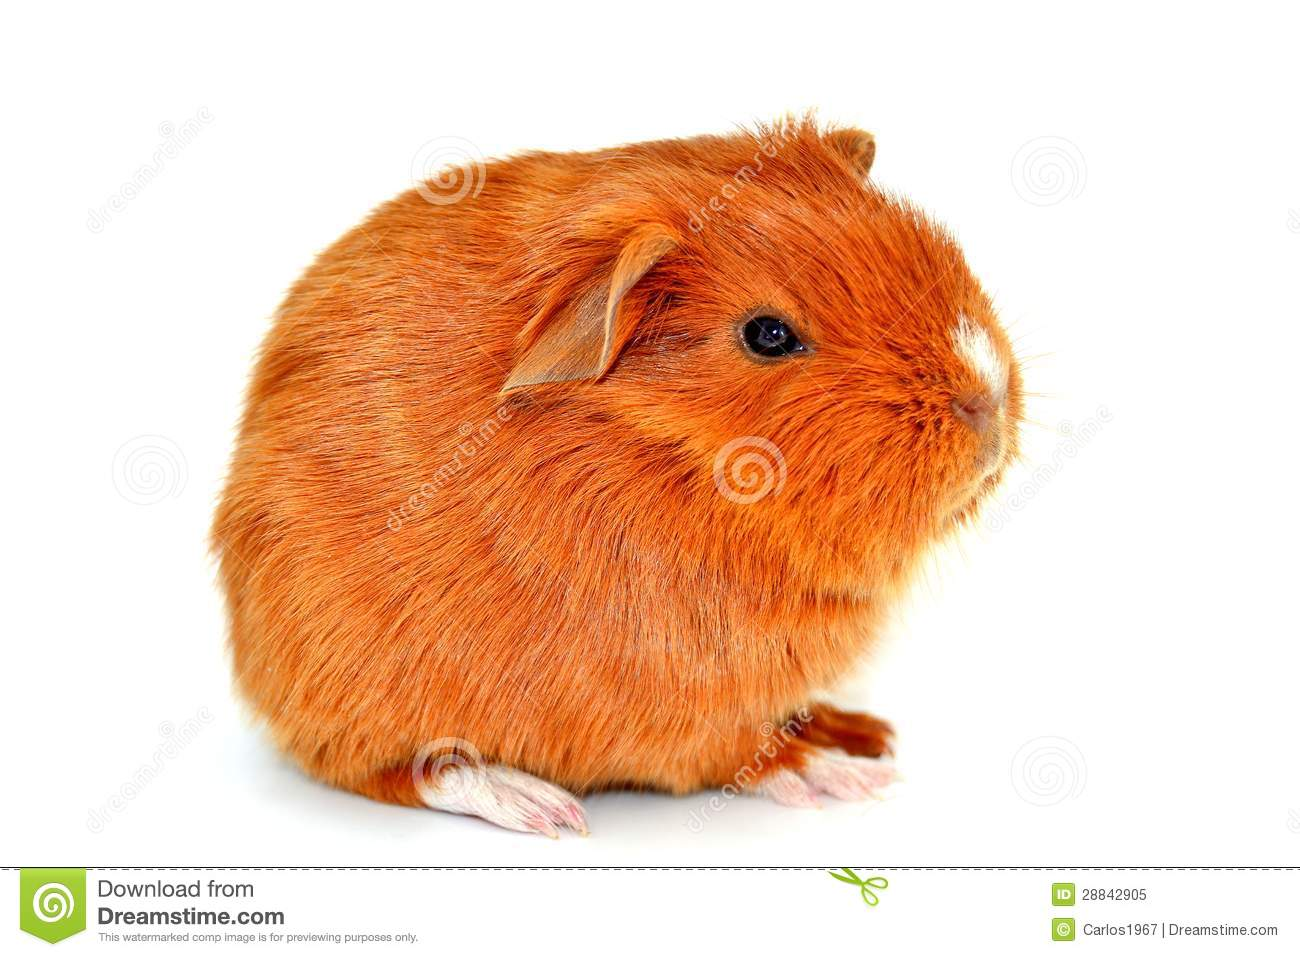 Guinea pig royalty free stock photo image 28842905 for Guinea pig pictures free